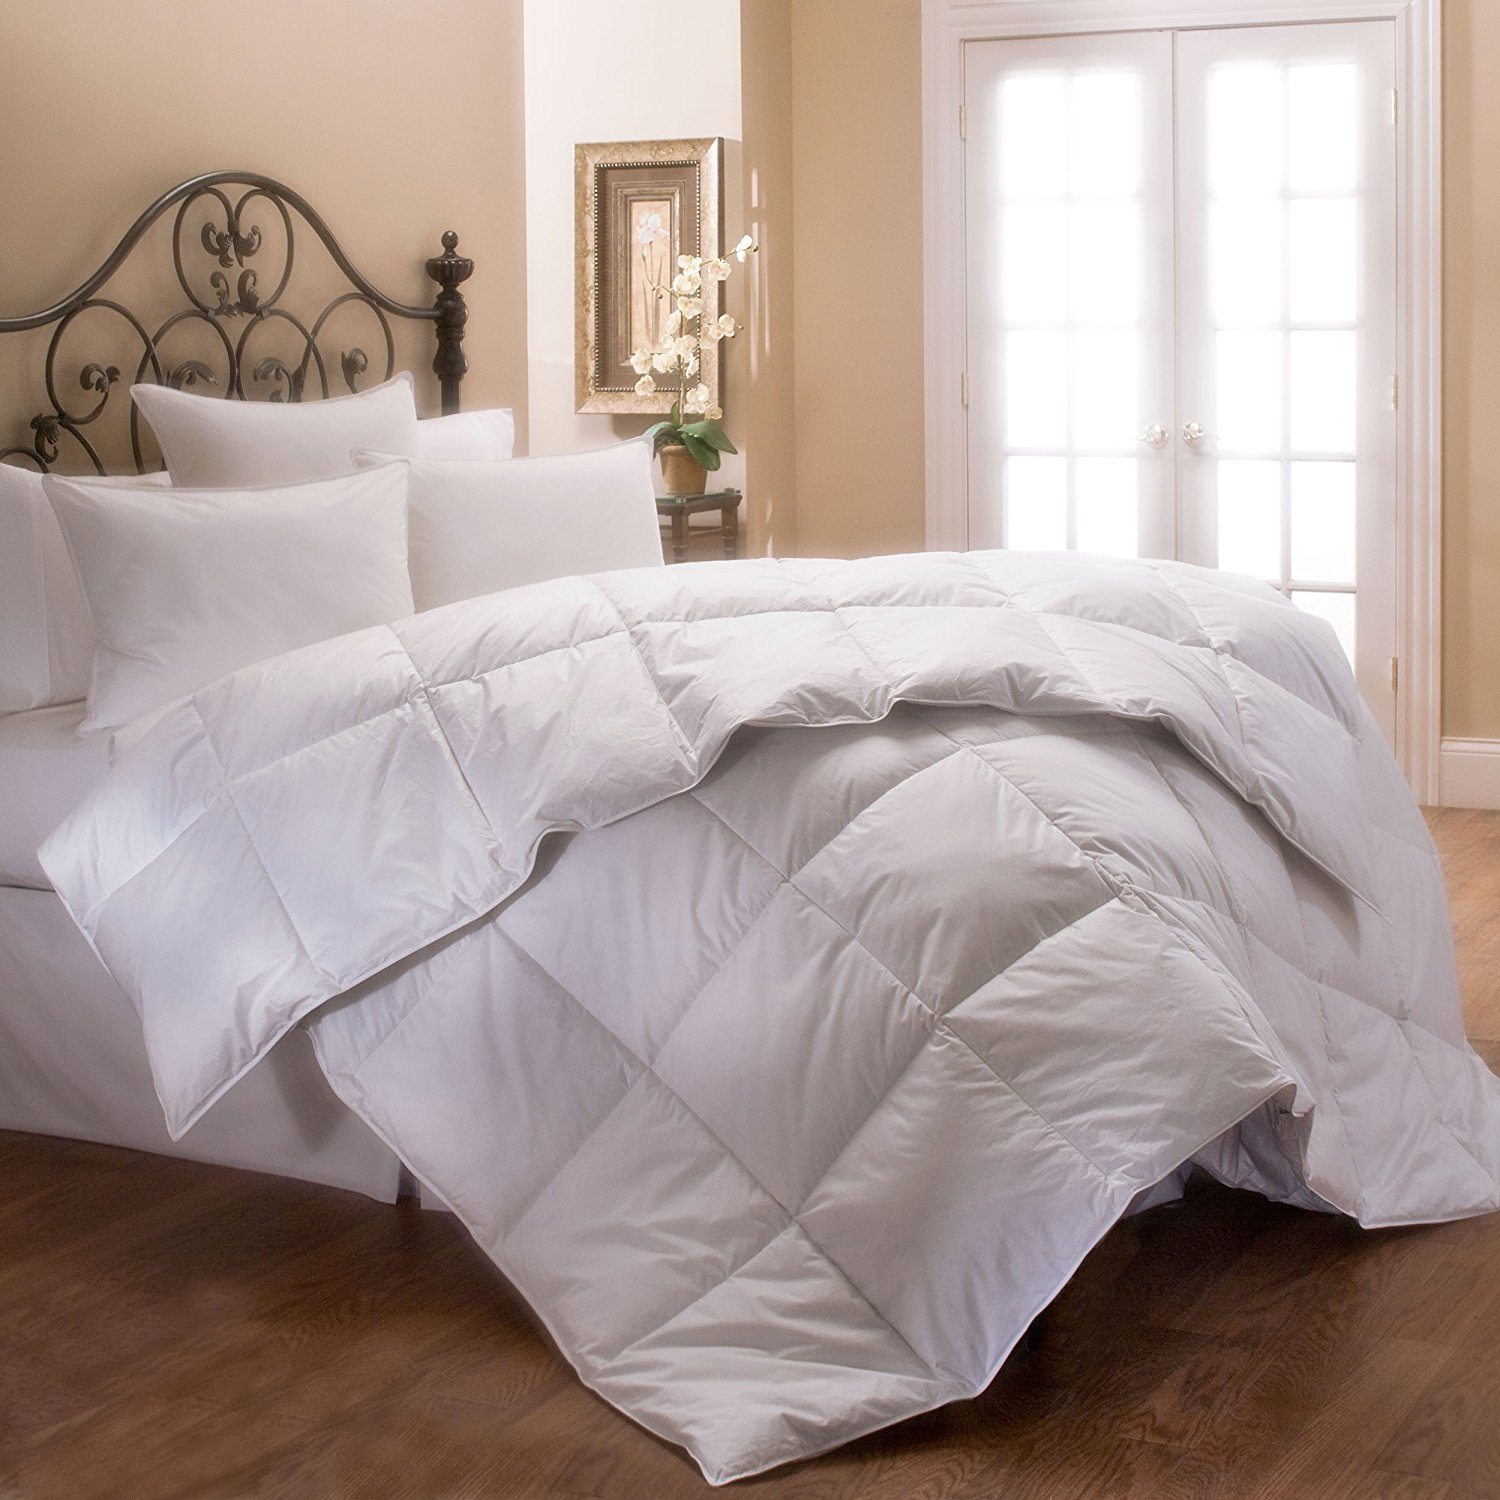 Hotel Bedding Collection Hypoallergenic PrimaLoft Luxury Down Alternative Comforter